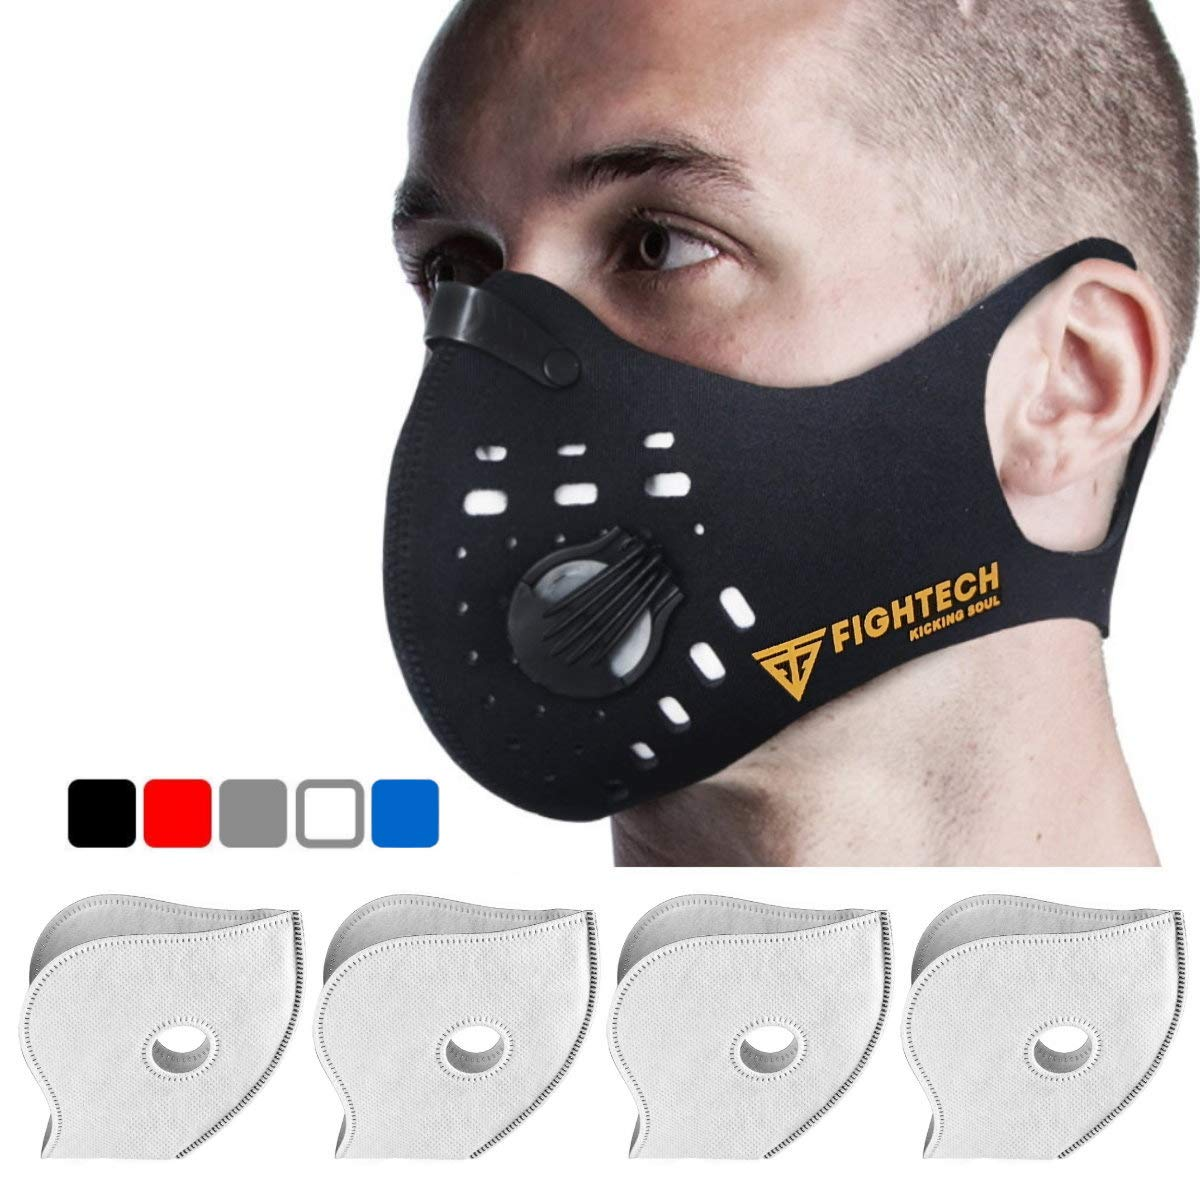 Anti-Pollution Dustproof/Dust Mask with 2 Valves and 4 Activated Carbon N99 Filters. Filtration of Exhaust Gas, Pollen Allergy and PM2.5. Cycling Face Mask for Outdoor Activities by FIGHTECH (BLK) by FIGHTECH (Image #1)